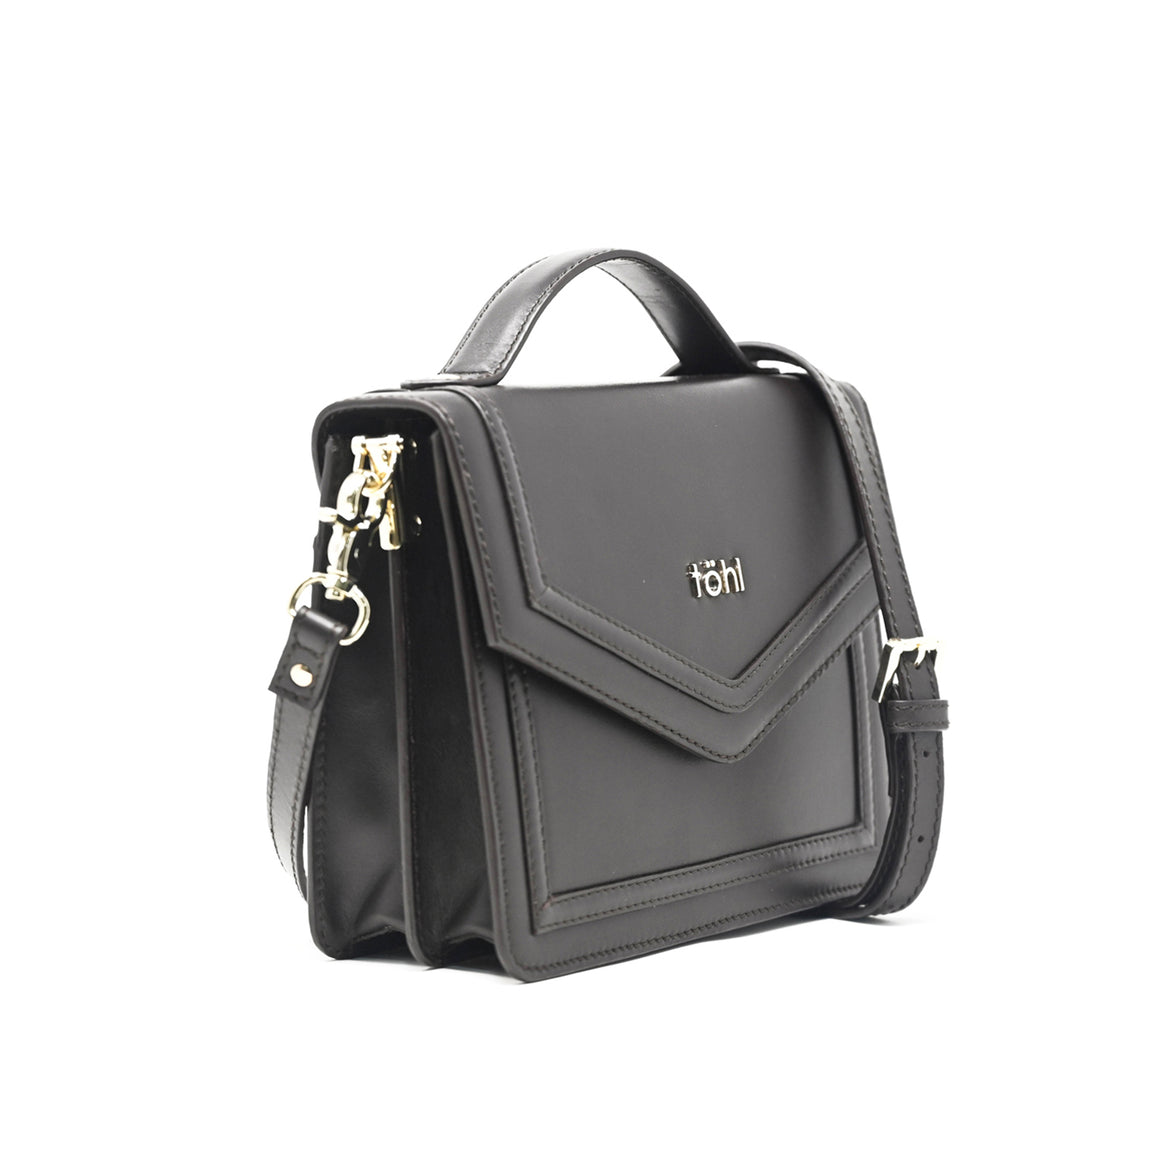 SG0034 - TOHL AVON WOMEN'S CROSS-BODY BAG - BLACK